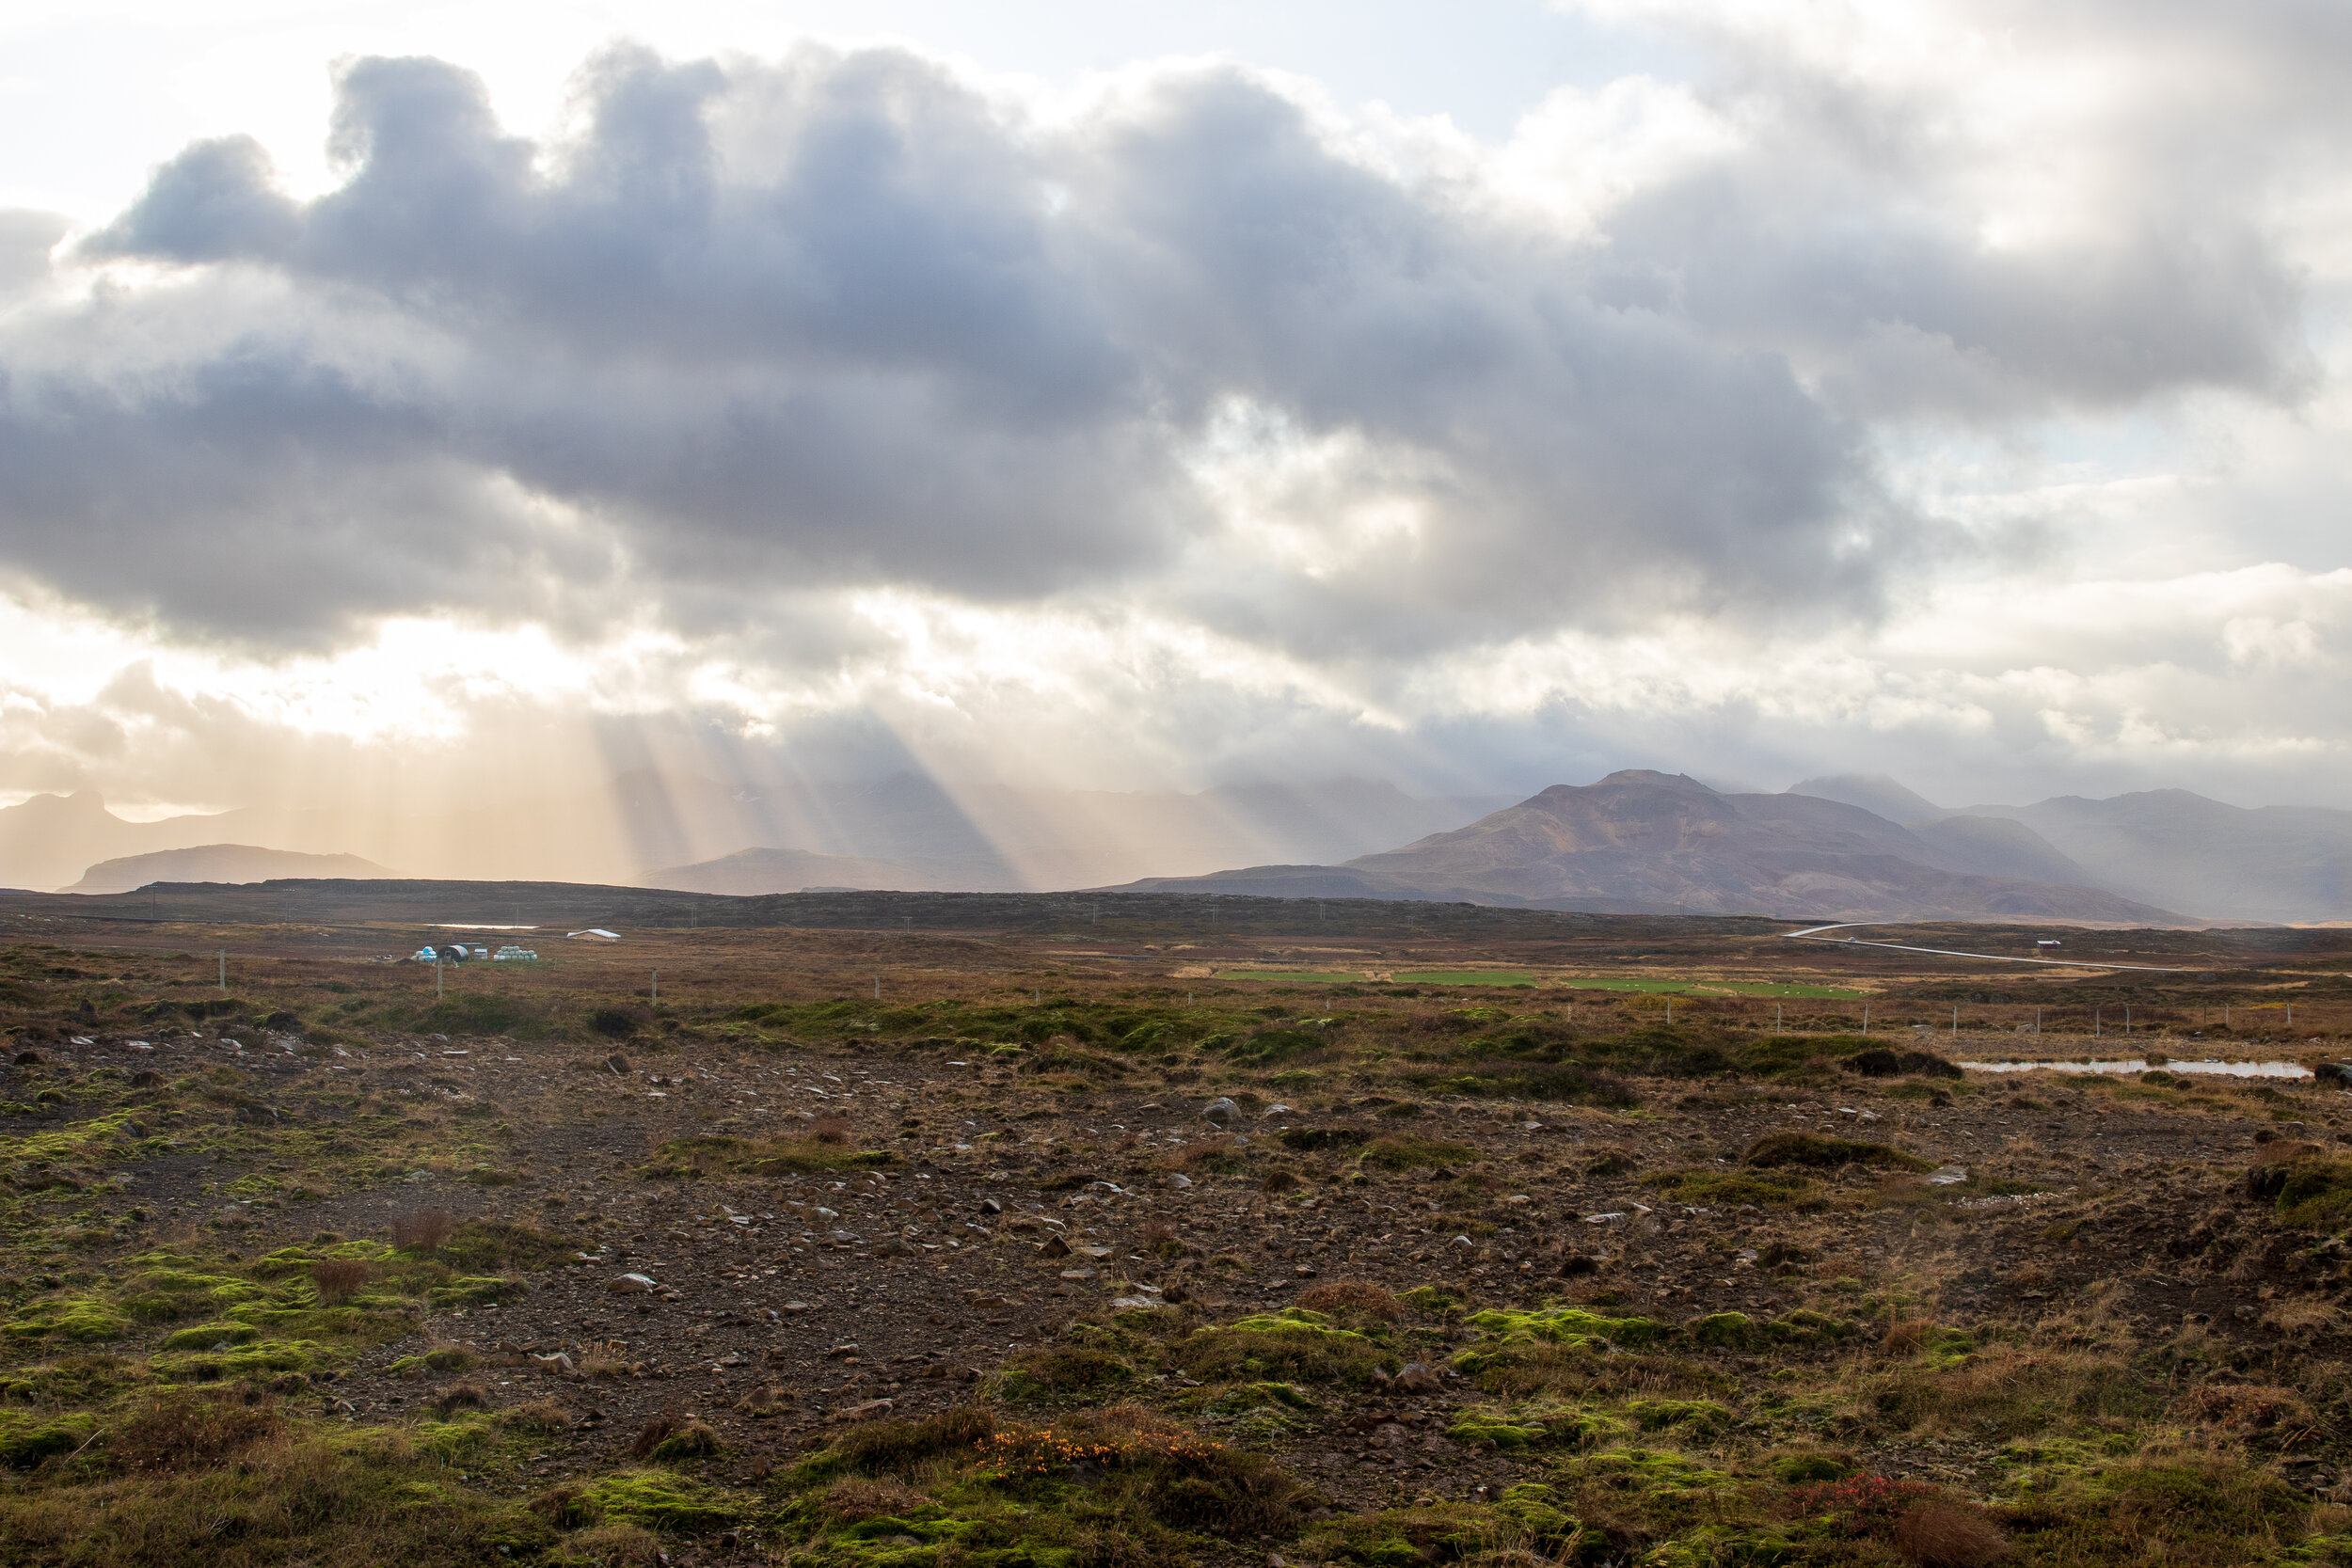 Rays of sun passing through the clouds on the mountains south of Stykkishólmur.